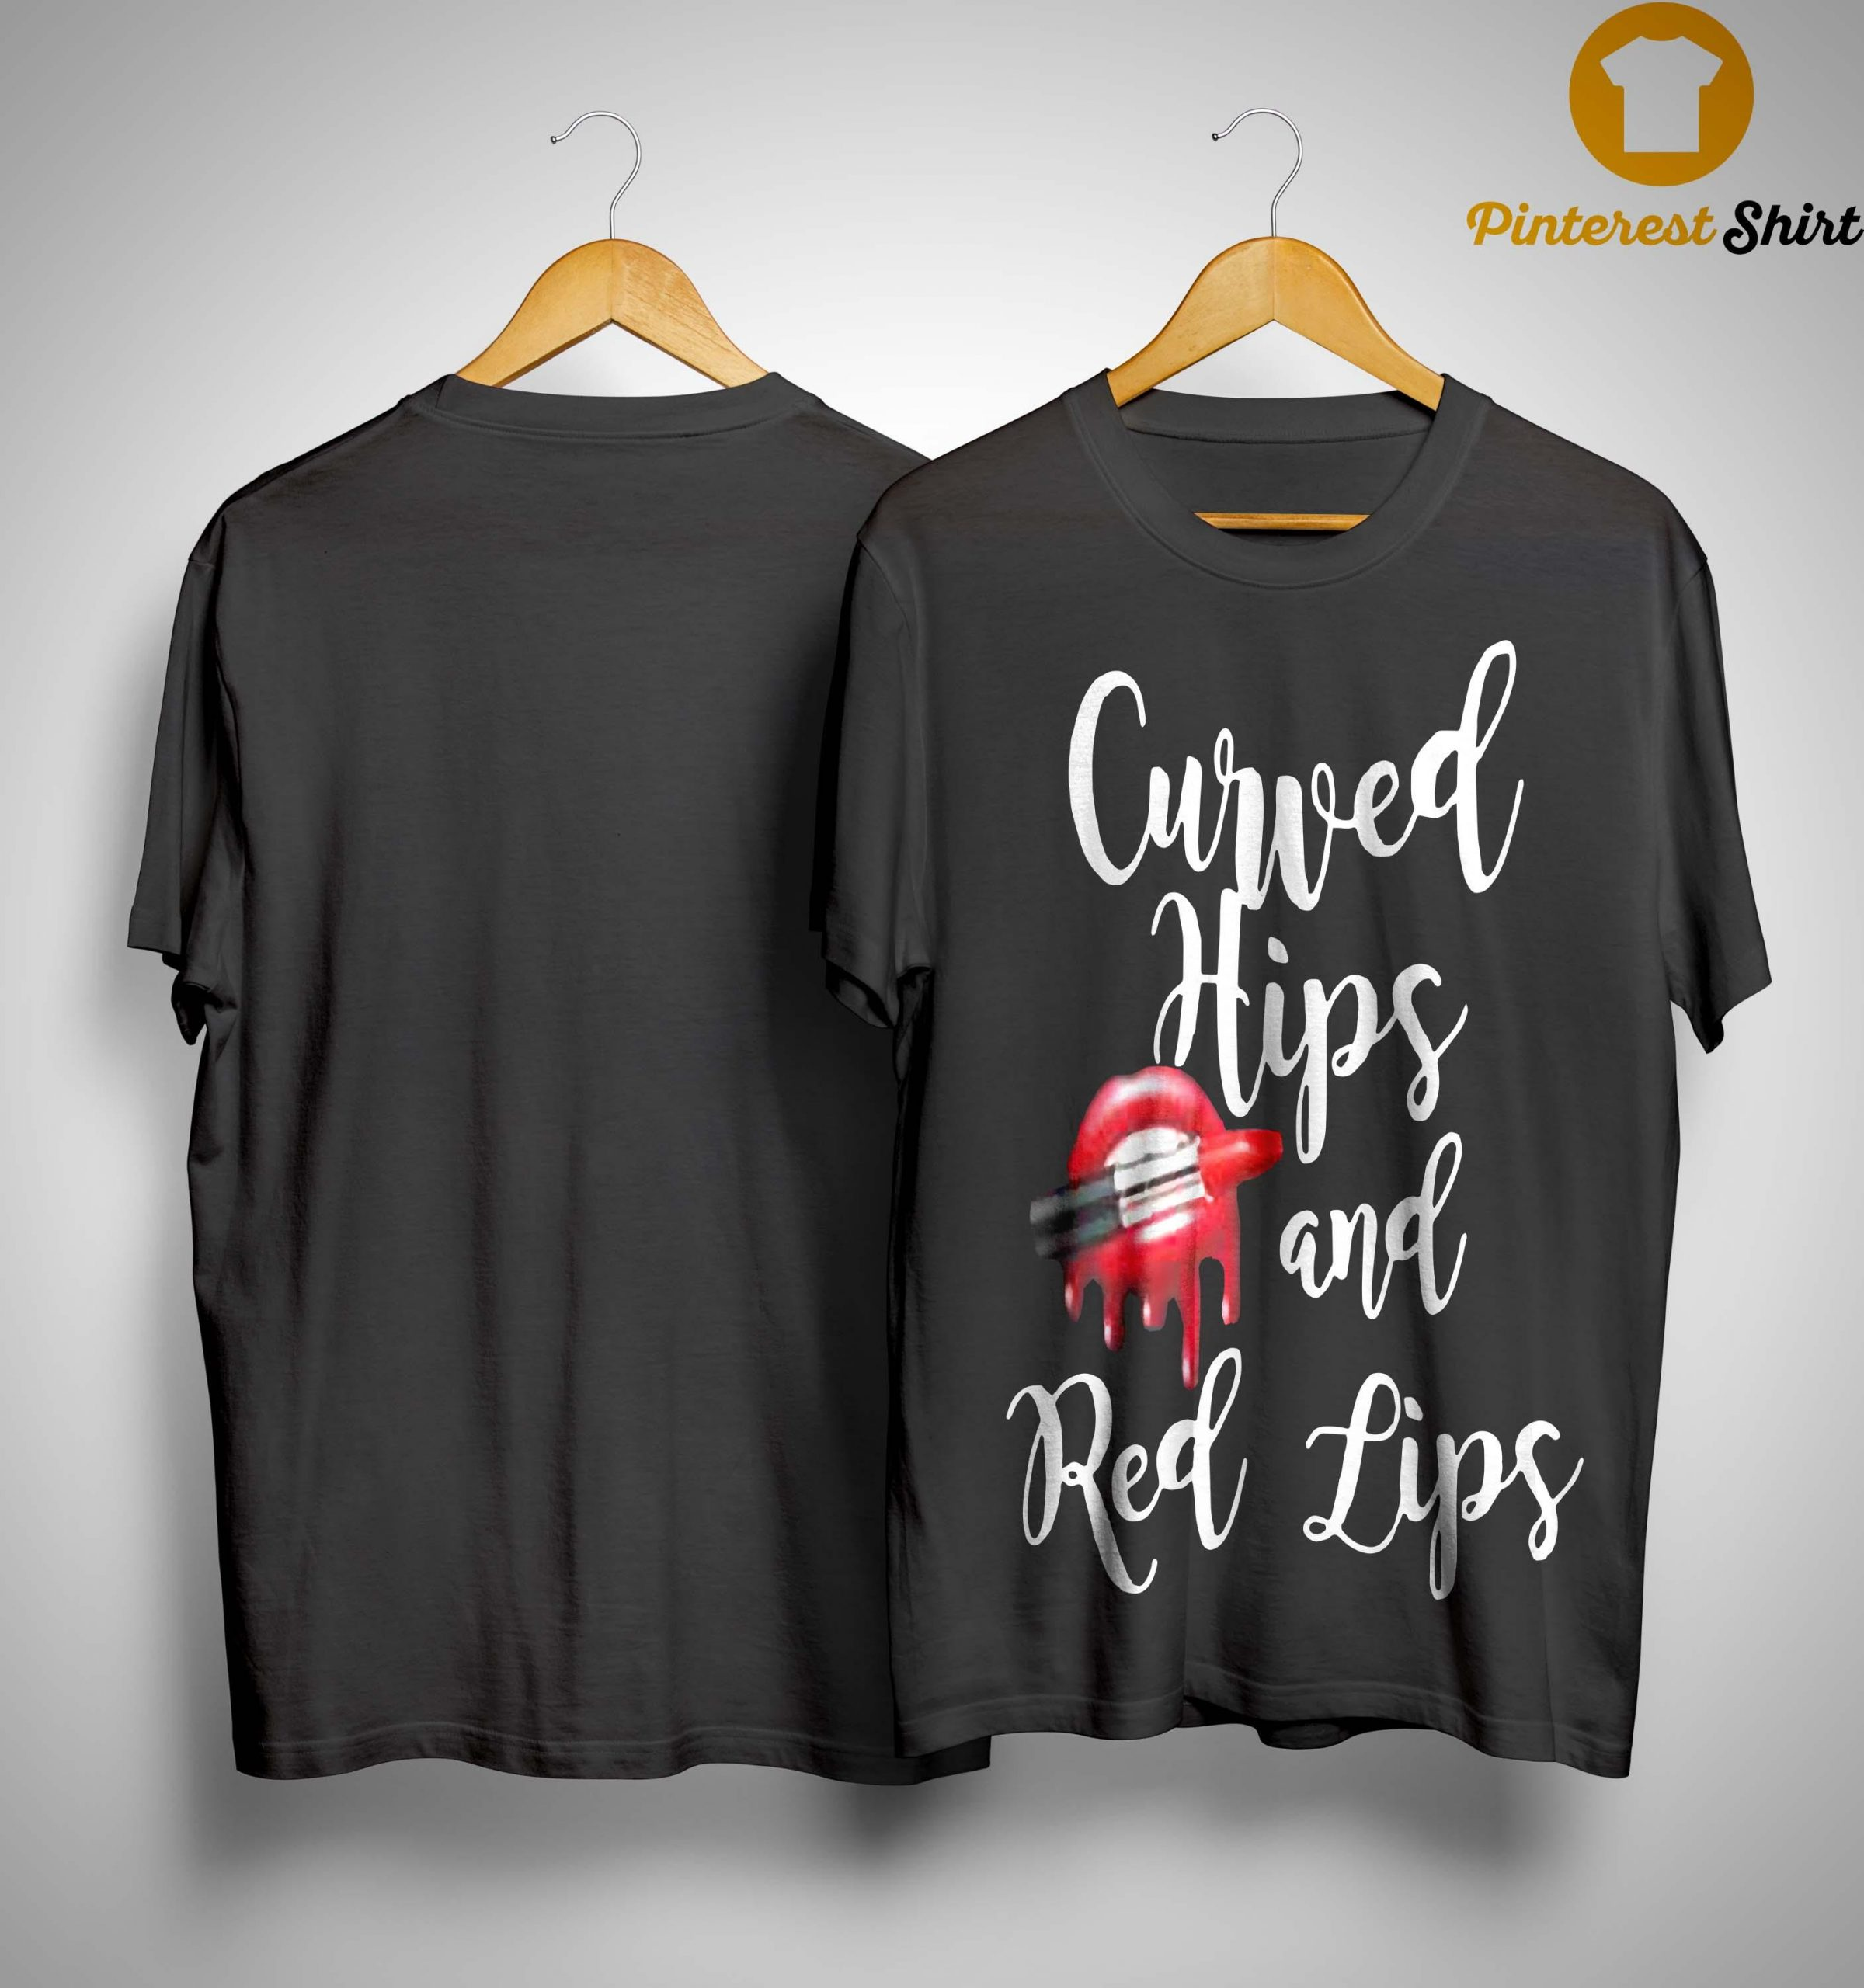 Curved Hips And Red Lips Shirt